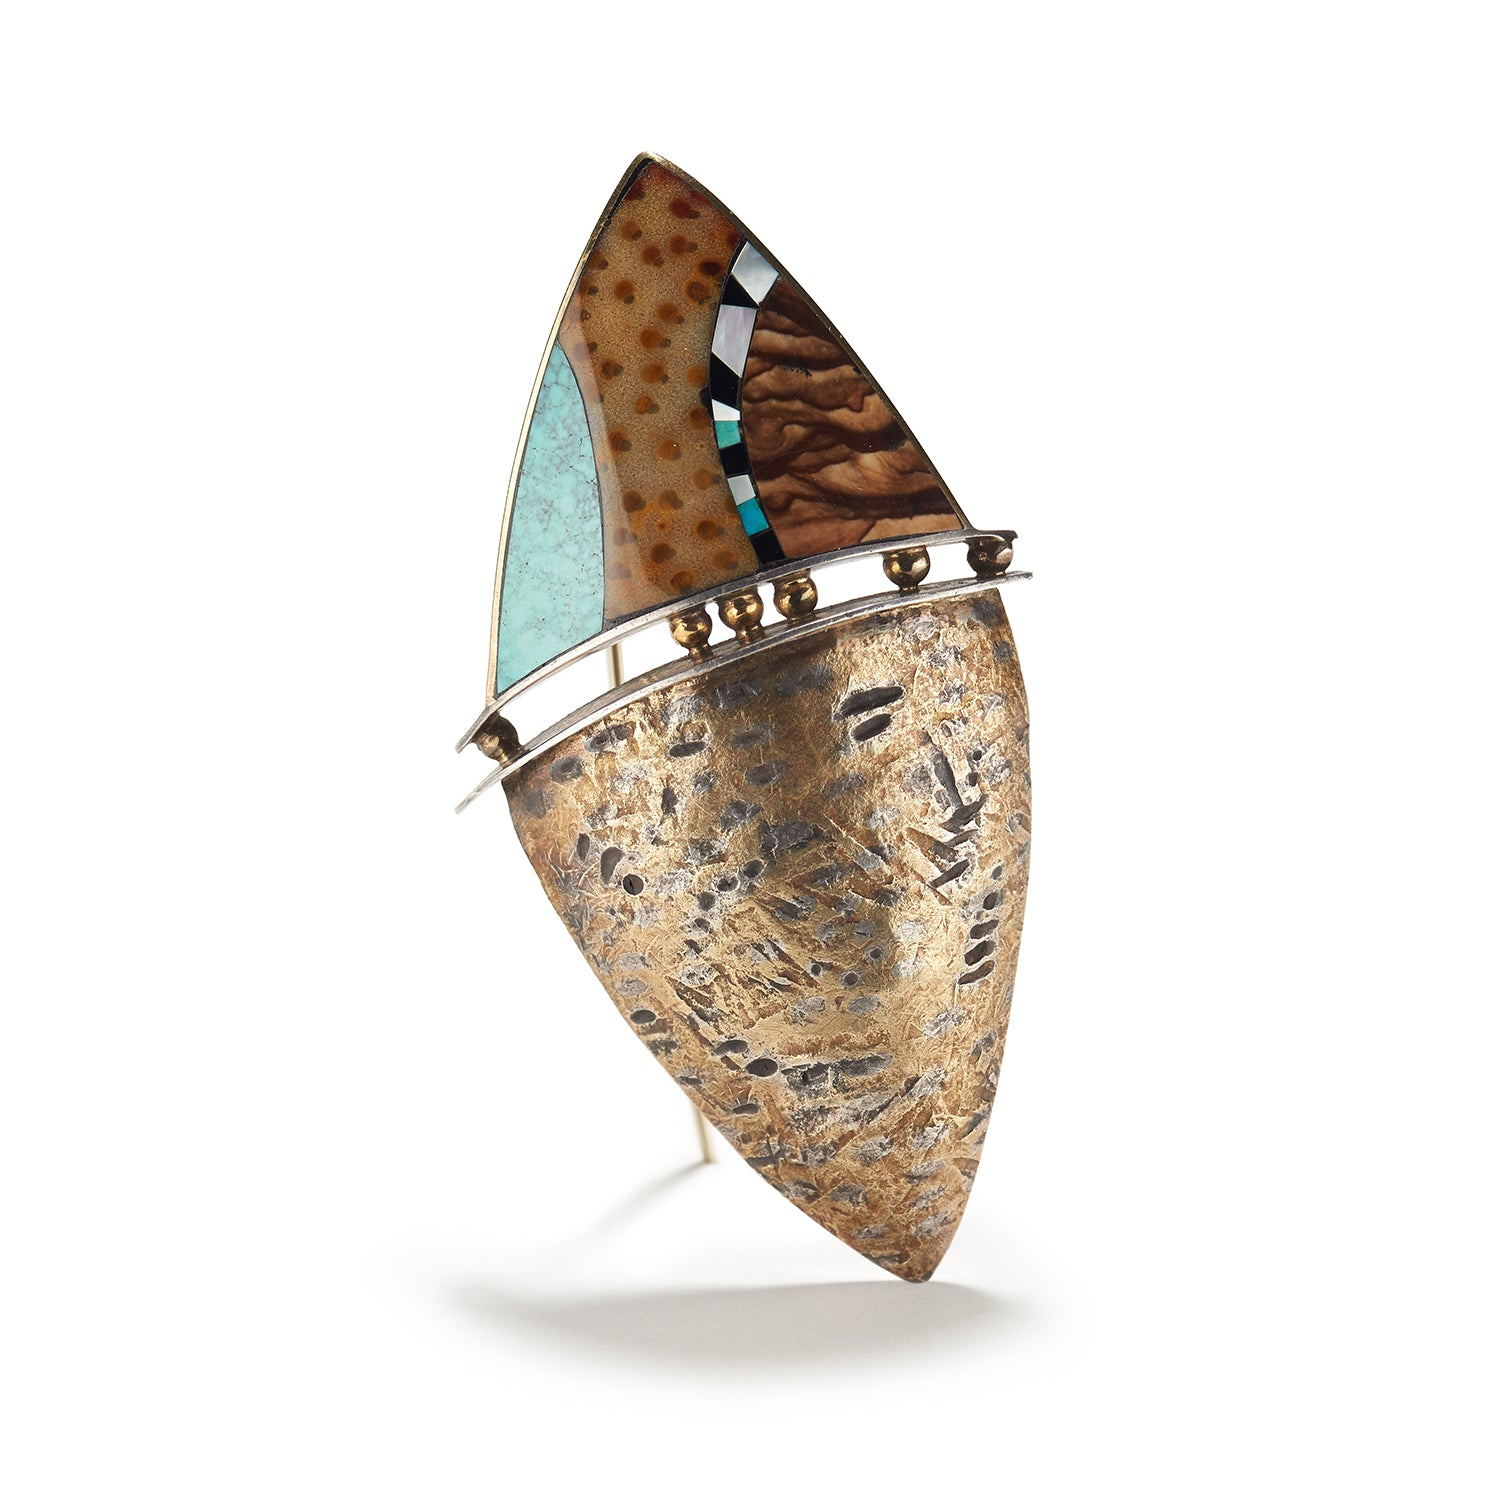 Inlaid Jasper, Palm-wood and Turquoise Brooch